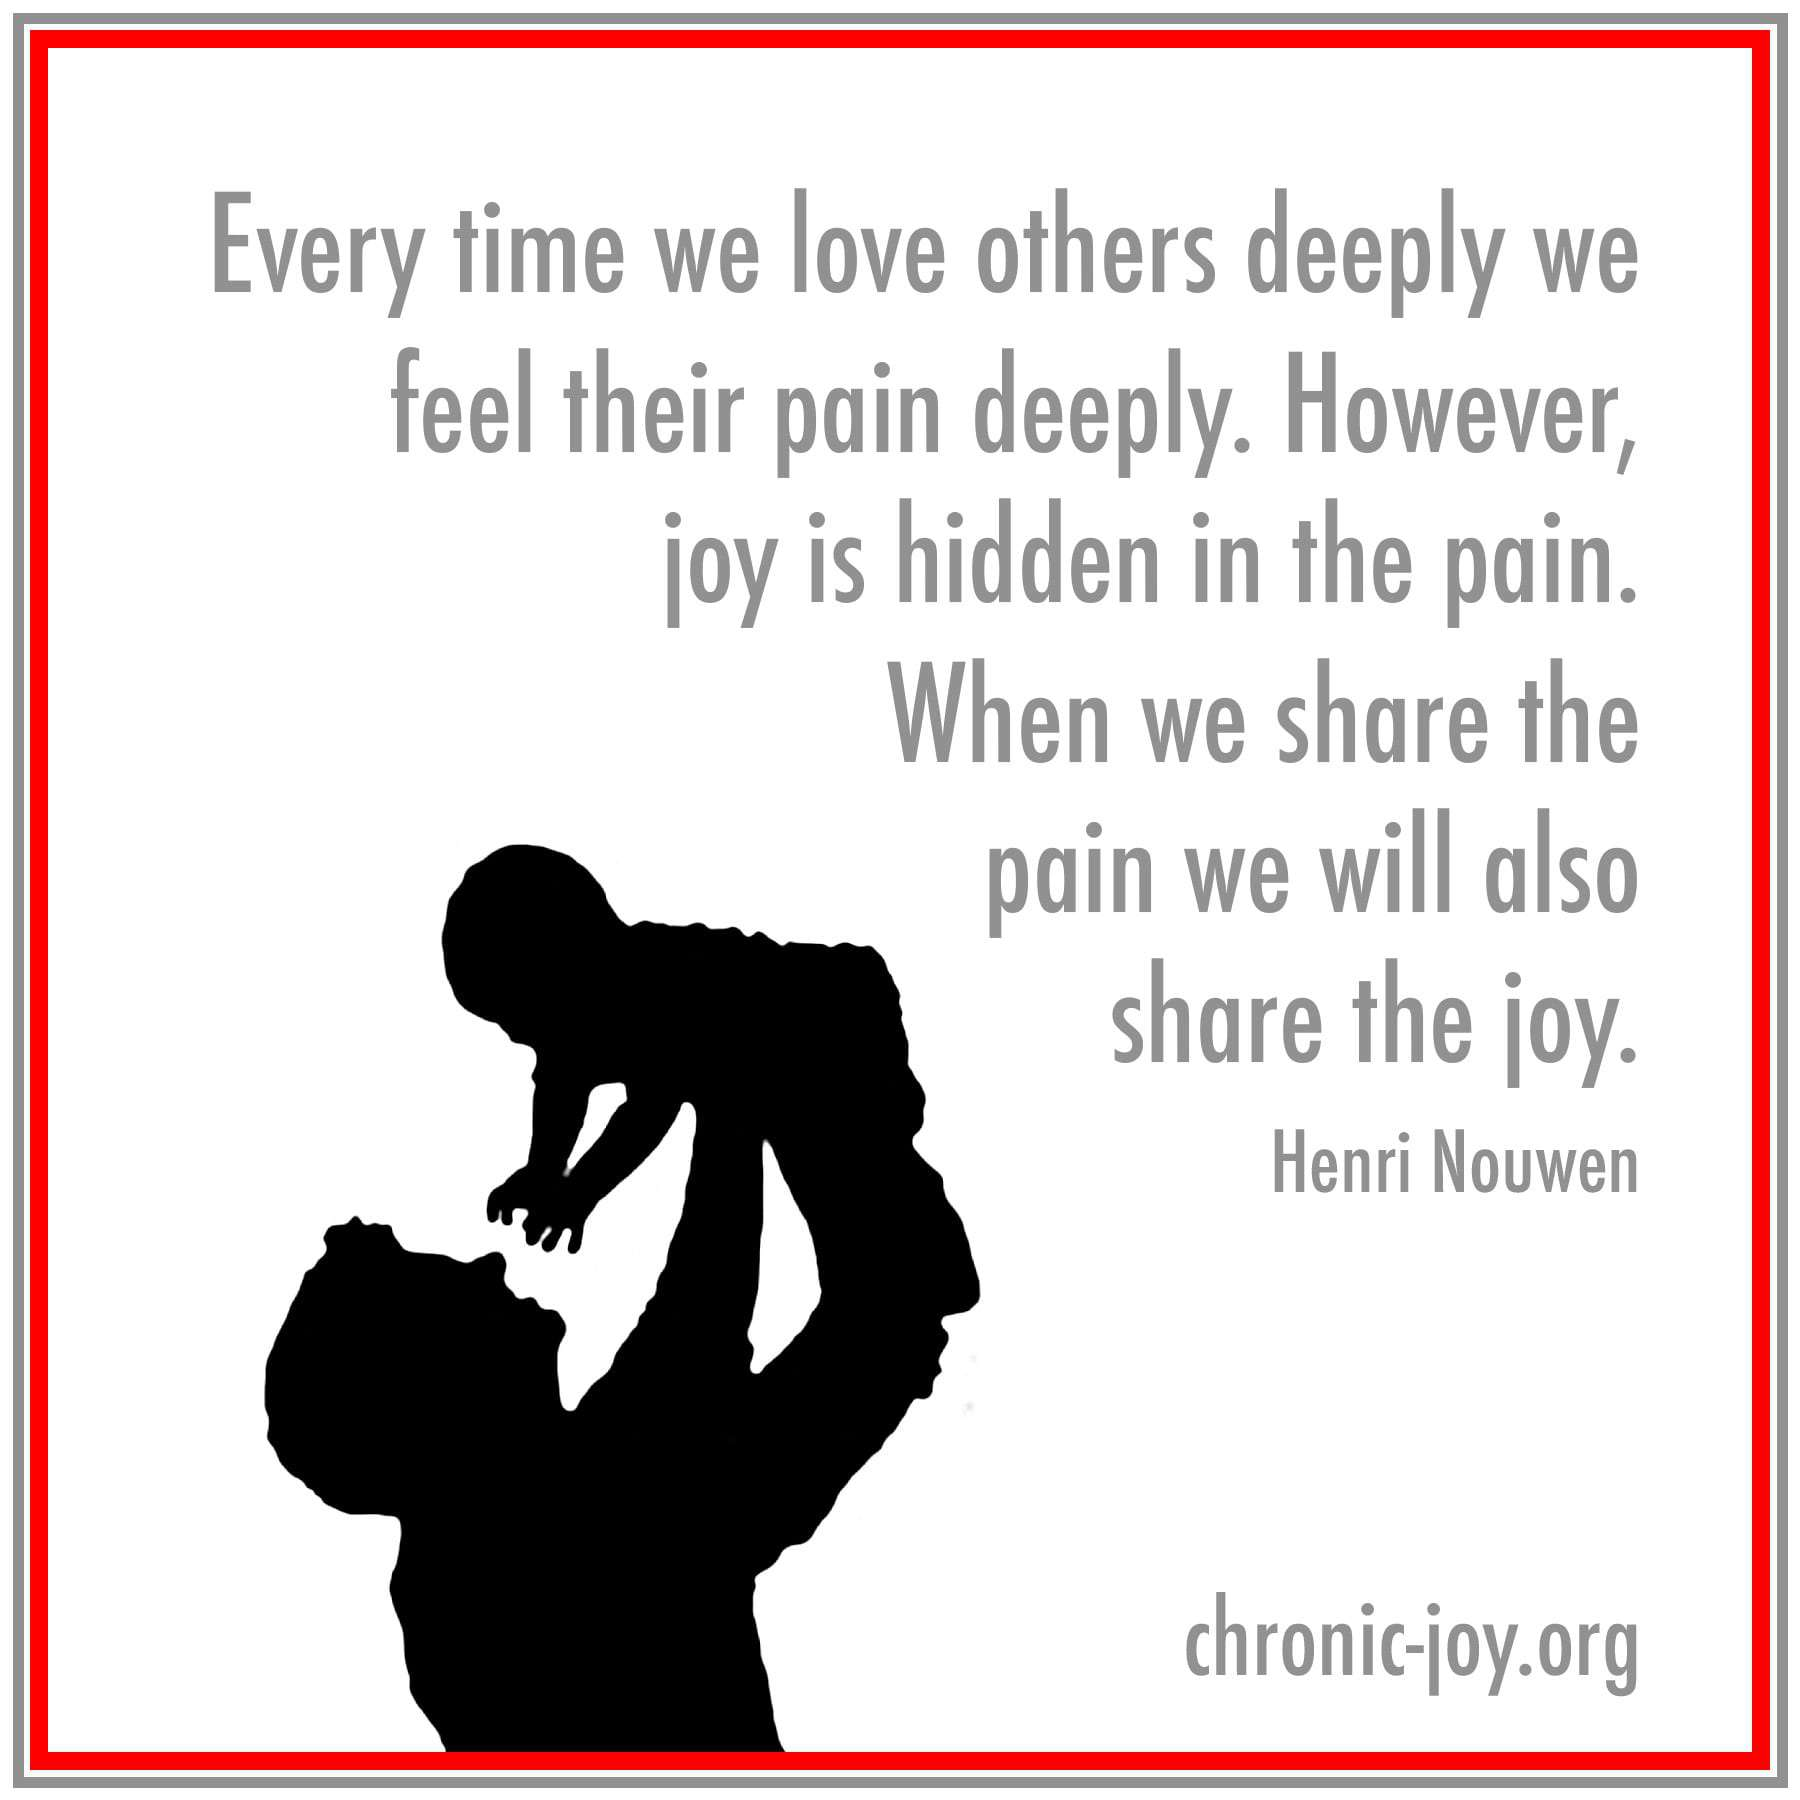 When we share the pain we will also share the joy. ~ Nouwen